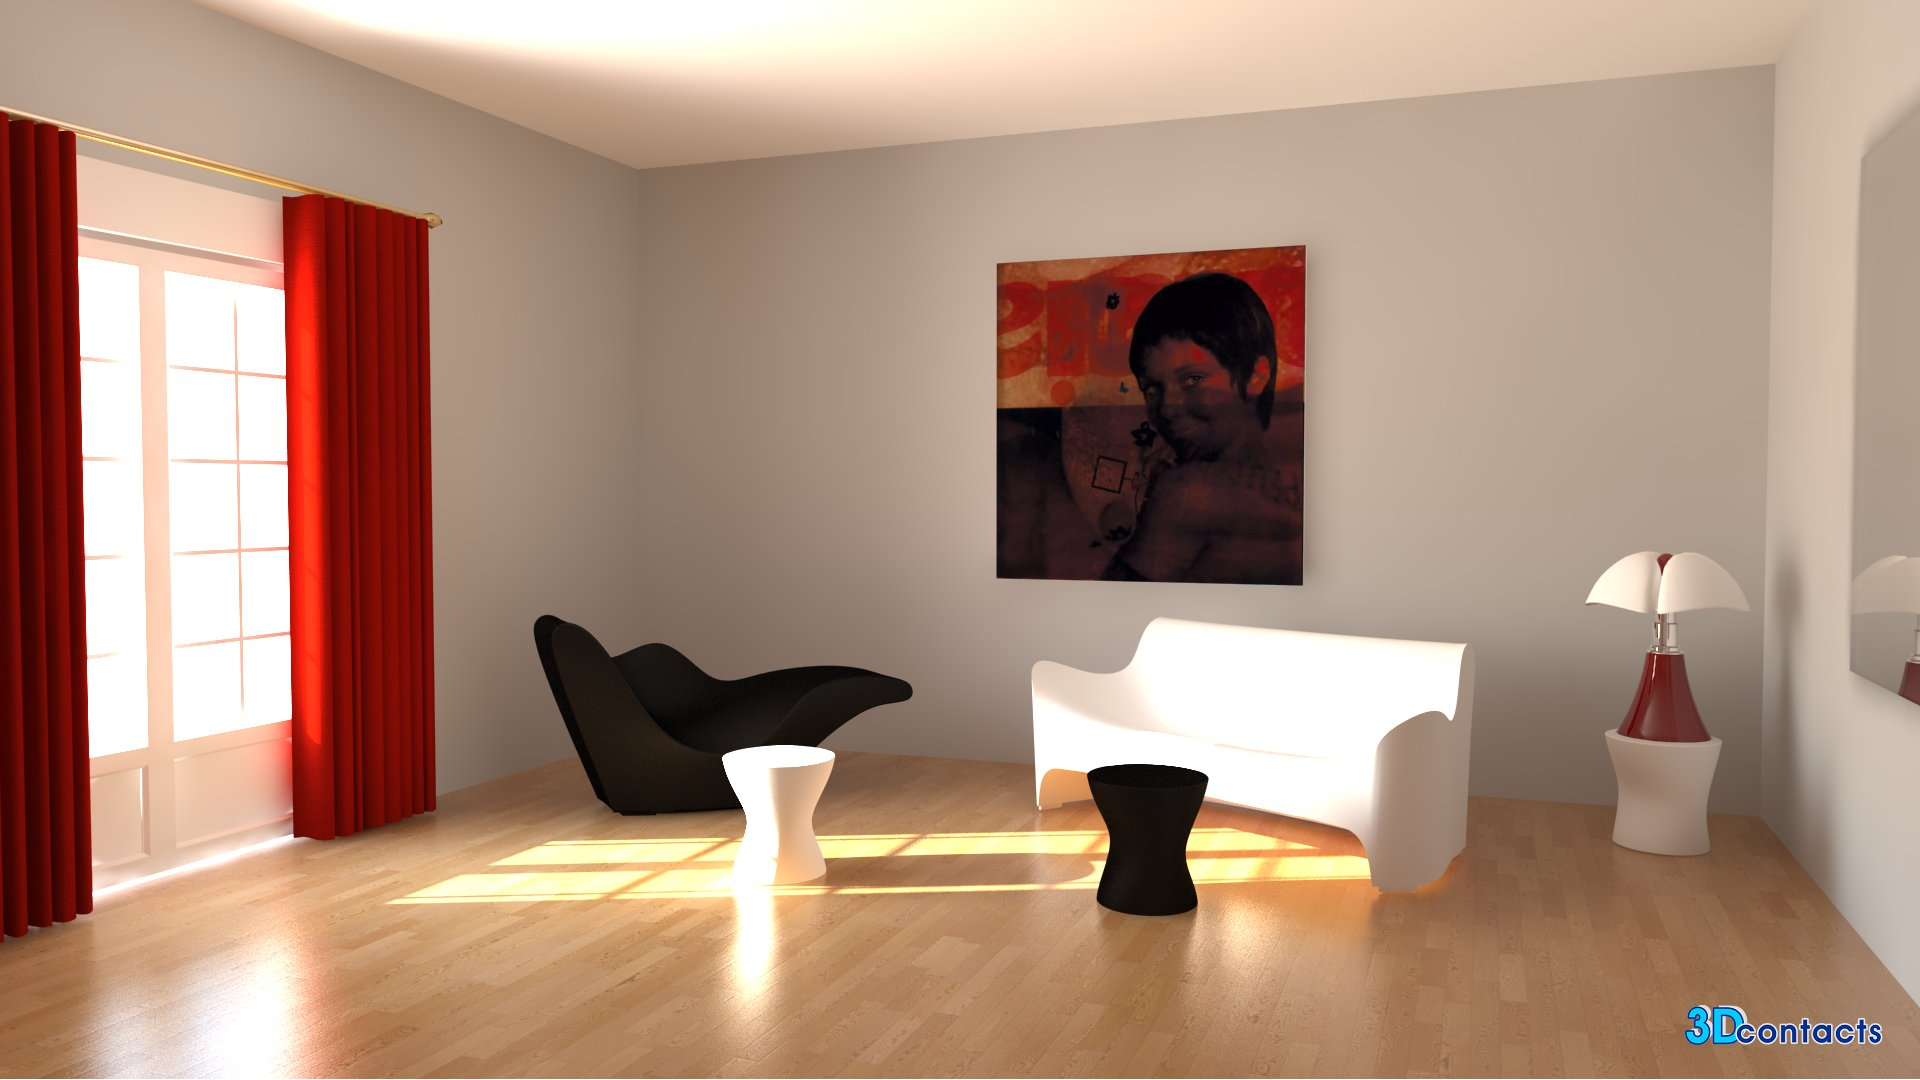 3d contacts salon design meubles de tokujin yoshioka. Black Bedroom Furniture Sets. Home Design Ideas